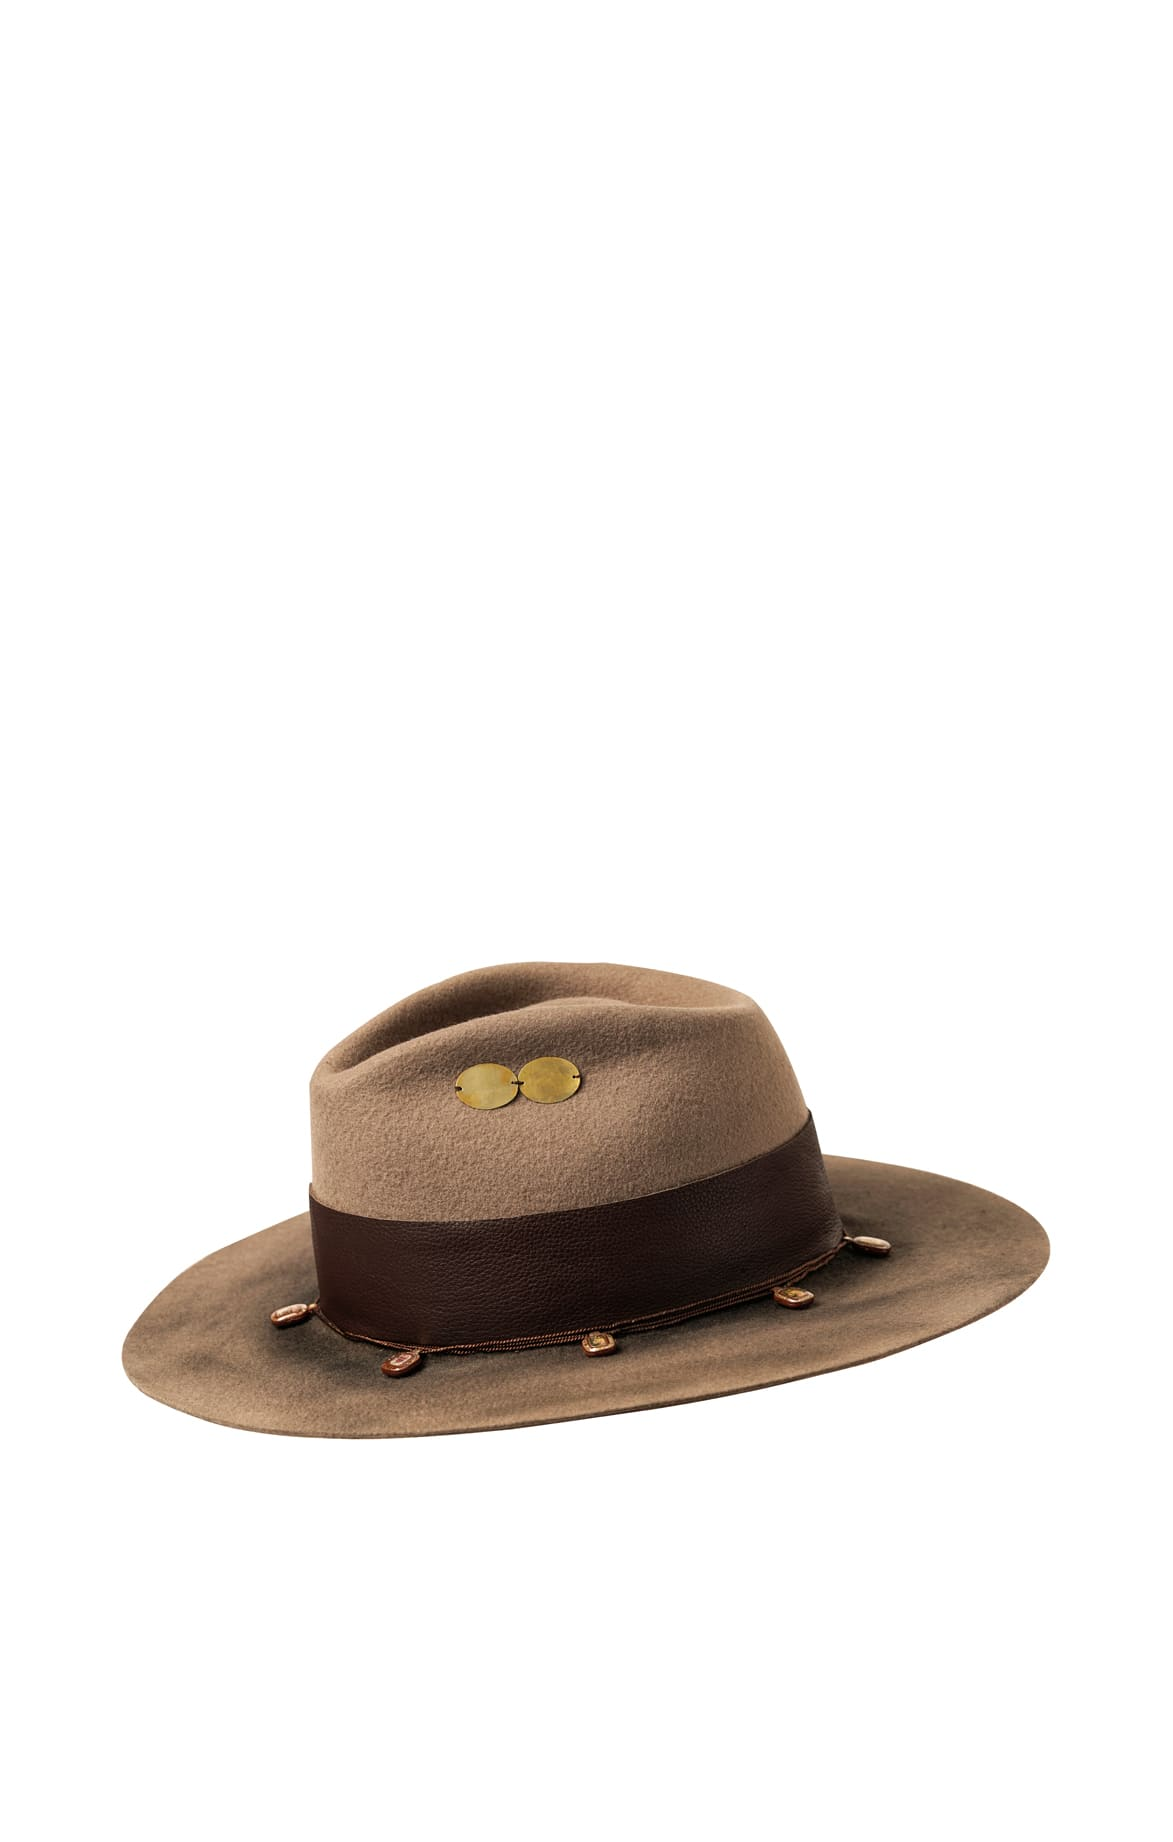 Felt and Chaquira Fedora Hat